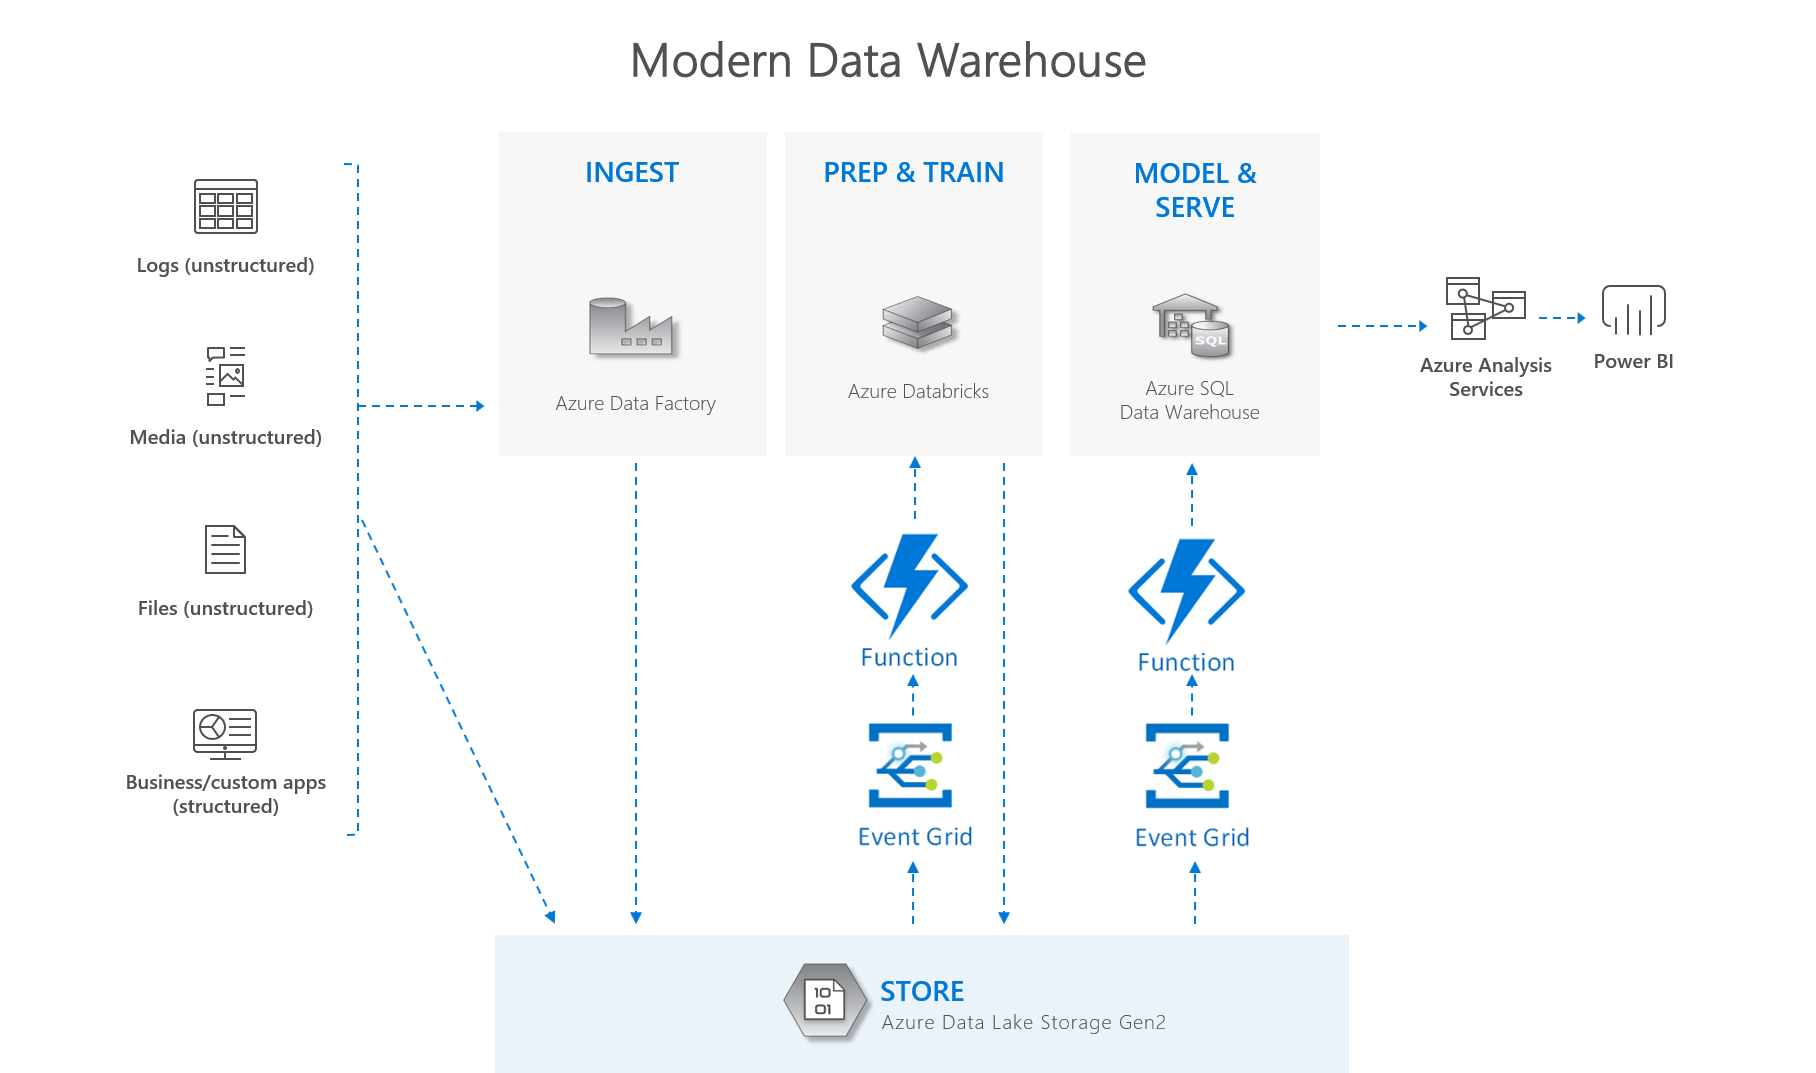 Modernes Data Warehouse